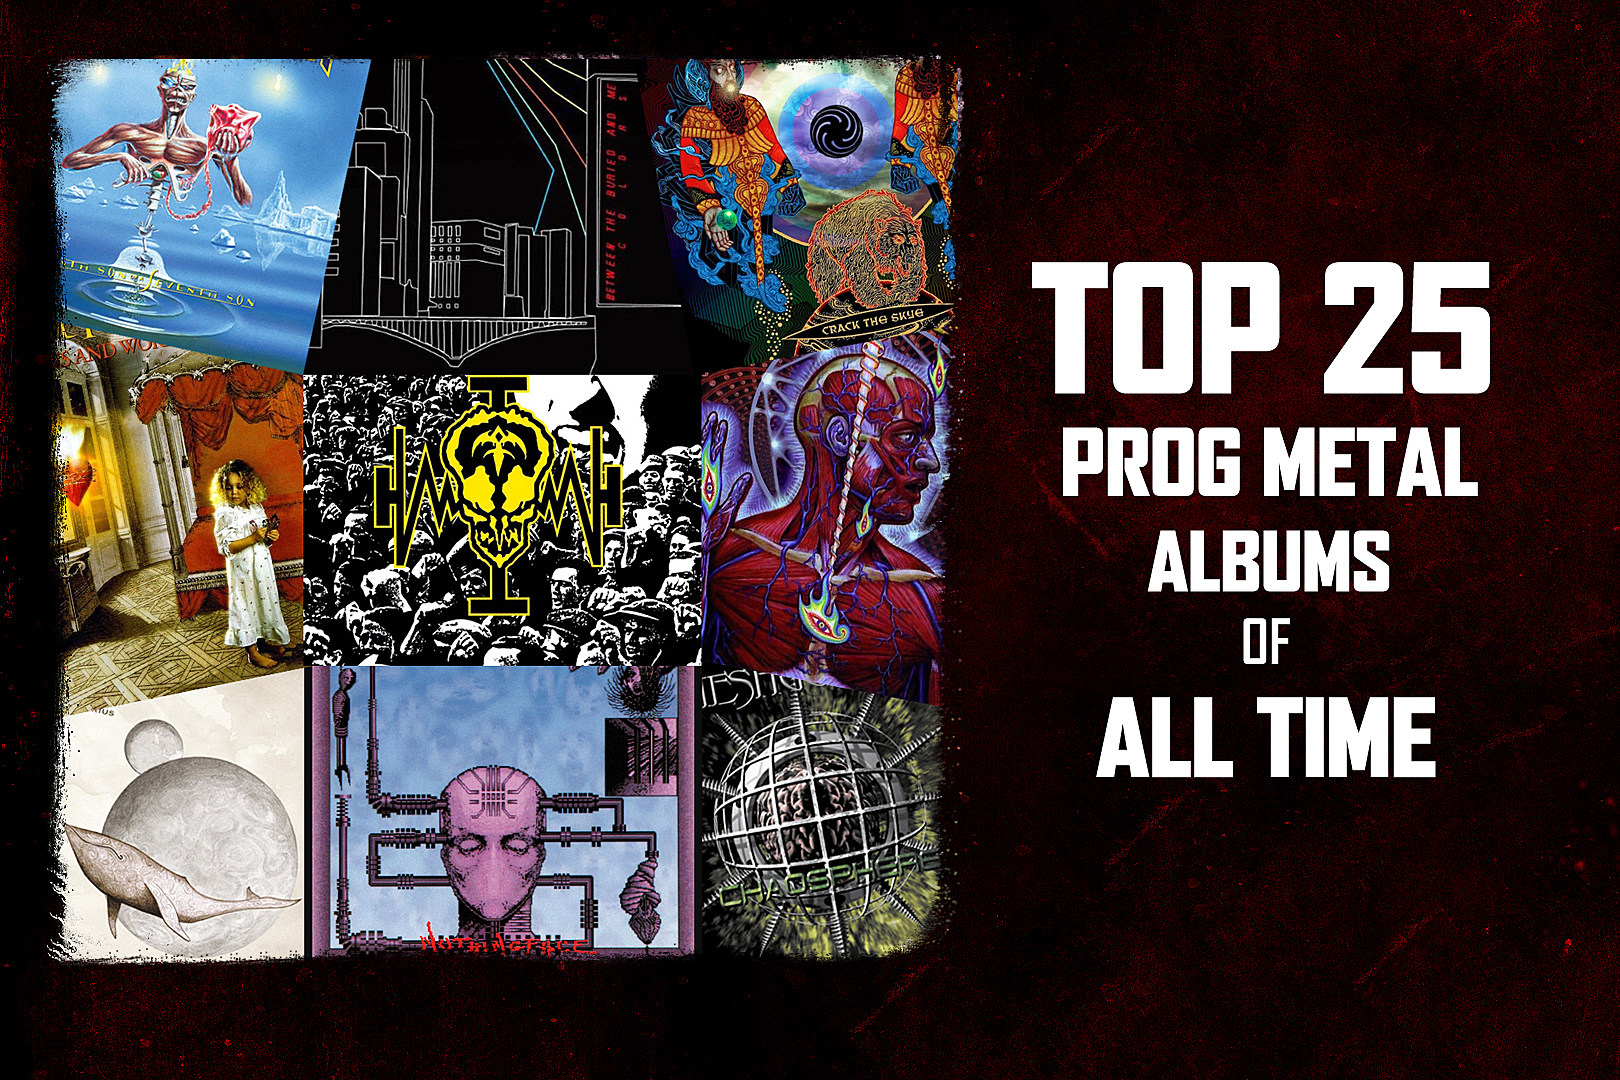 Top 25 Progressive Metal Albums of All Time